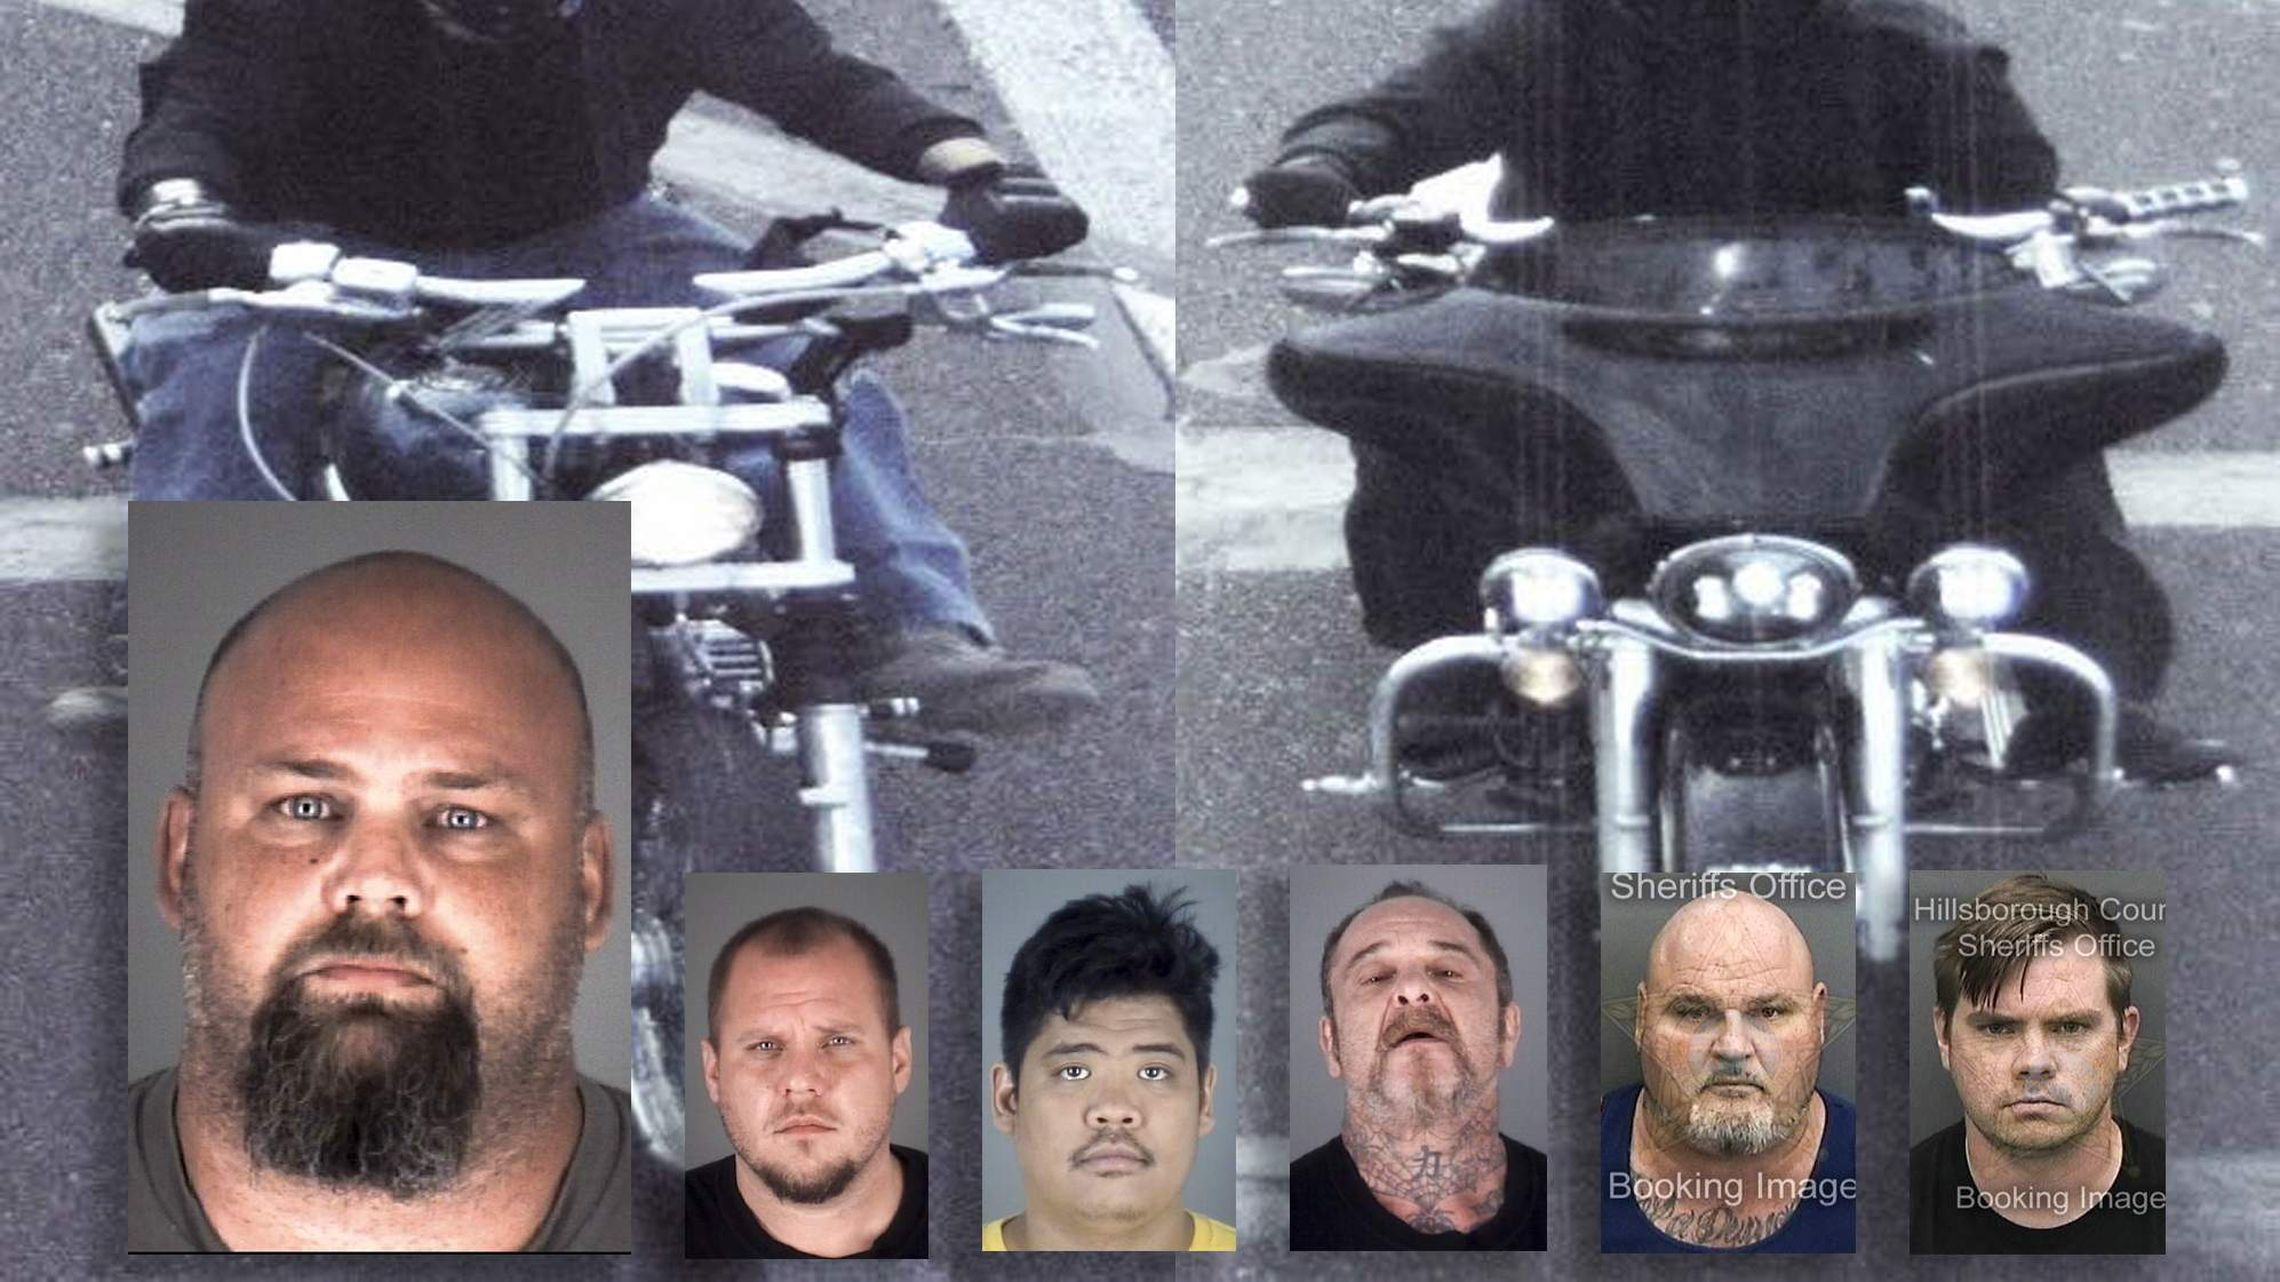 Violent Feud Led Up To Slaying Of Pasco Outlaws Leader It Started With Stolen Biker Vests